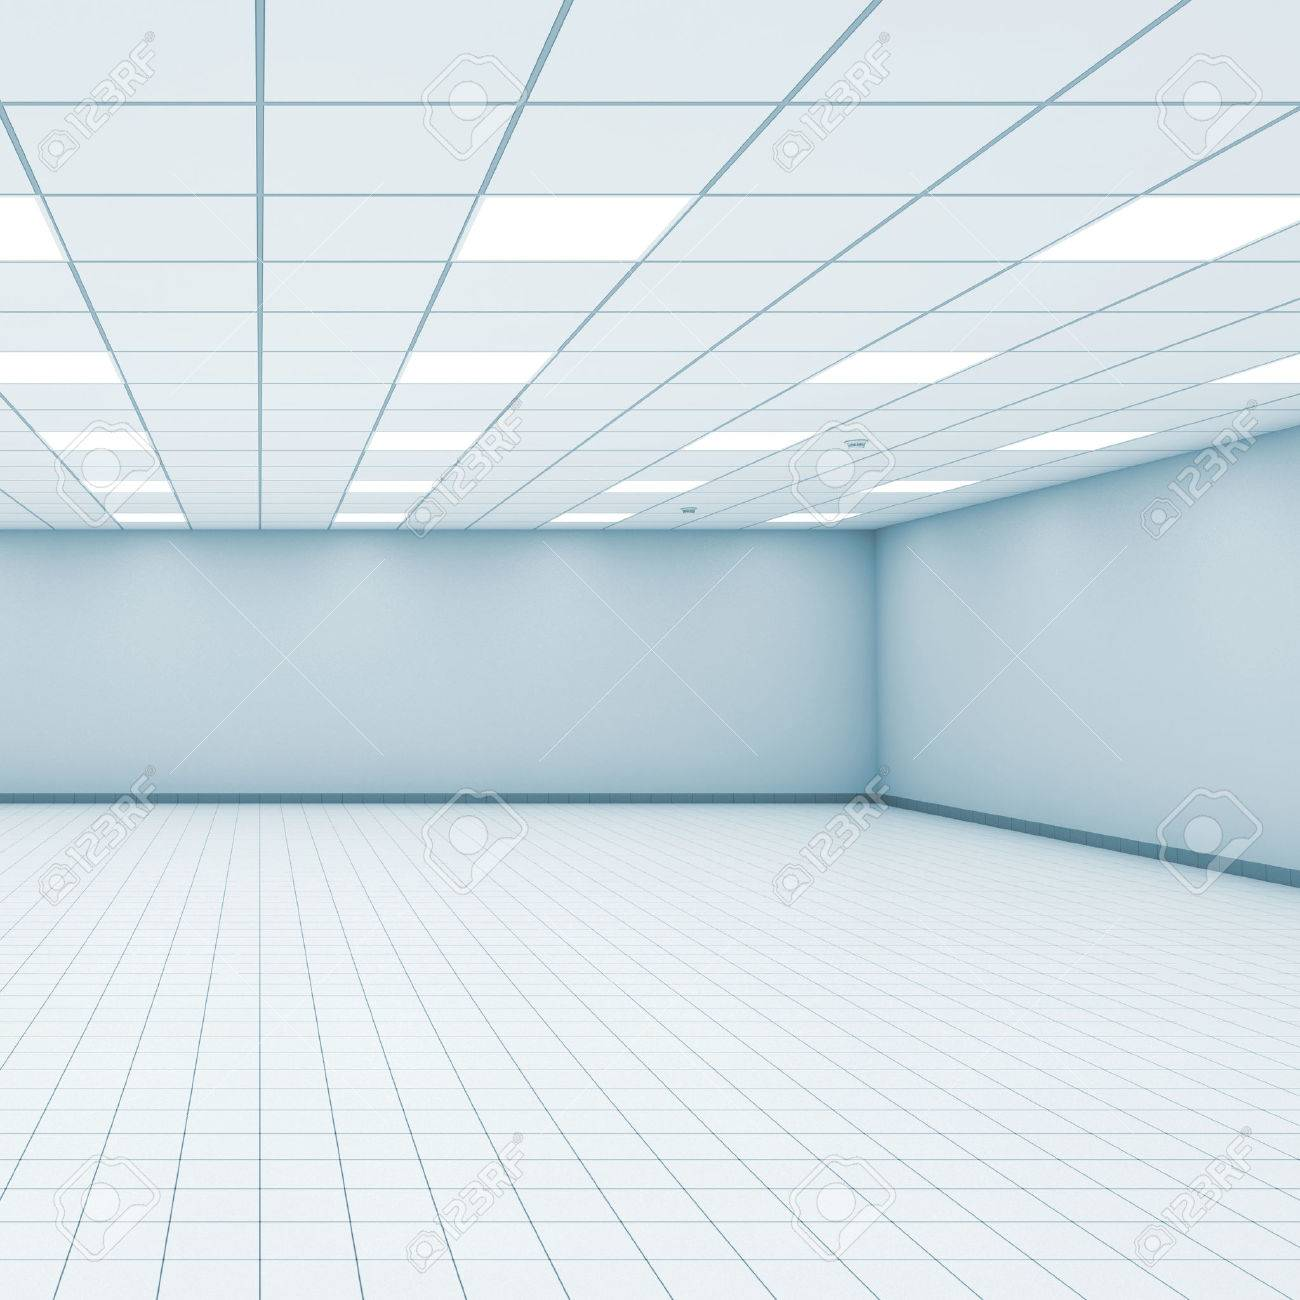 Abstract Empty Office Room Interior With Light Blue Walls, Ceiling ...